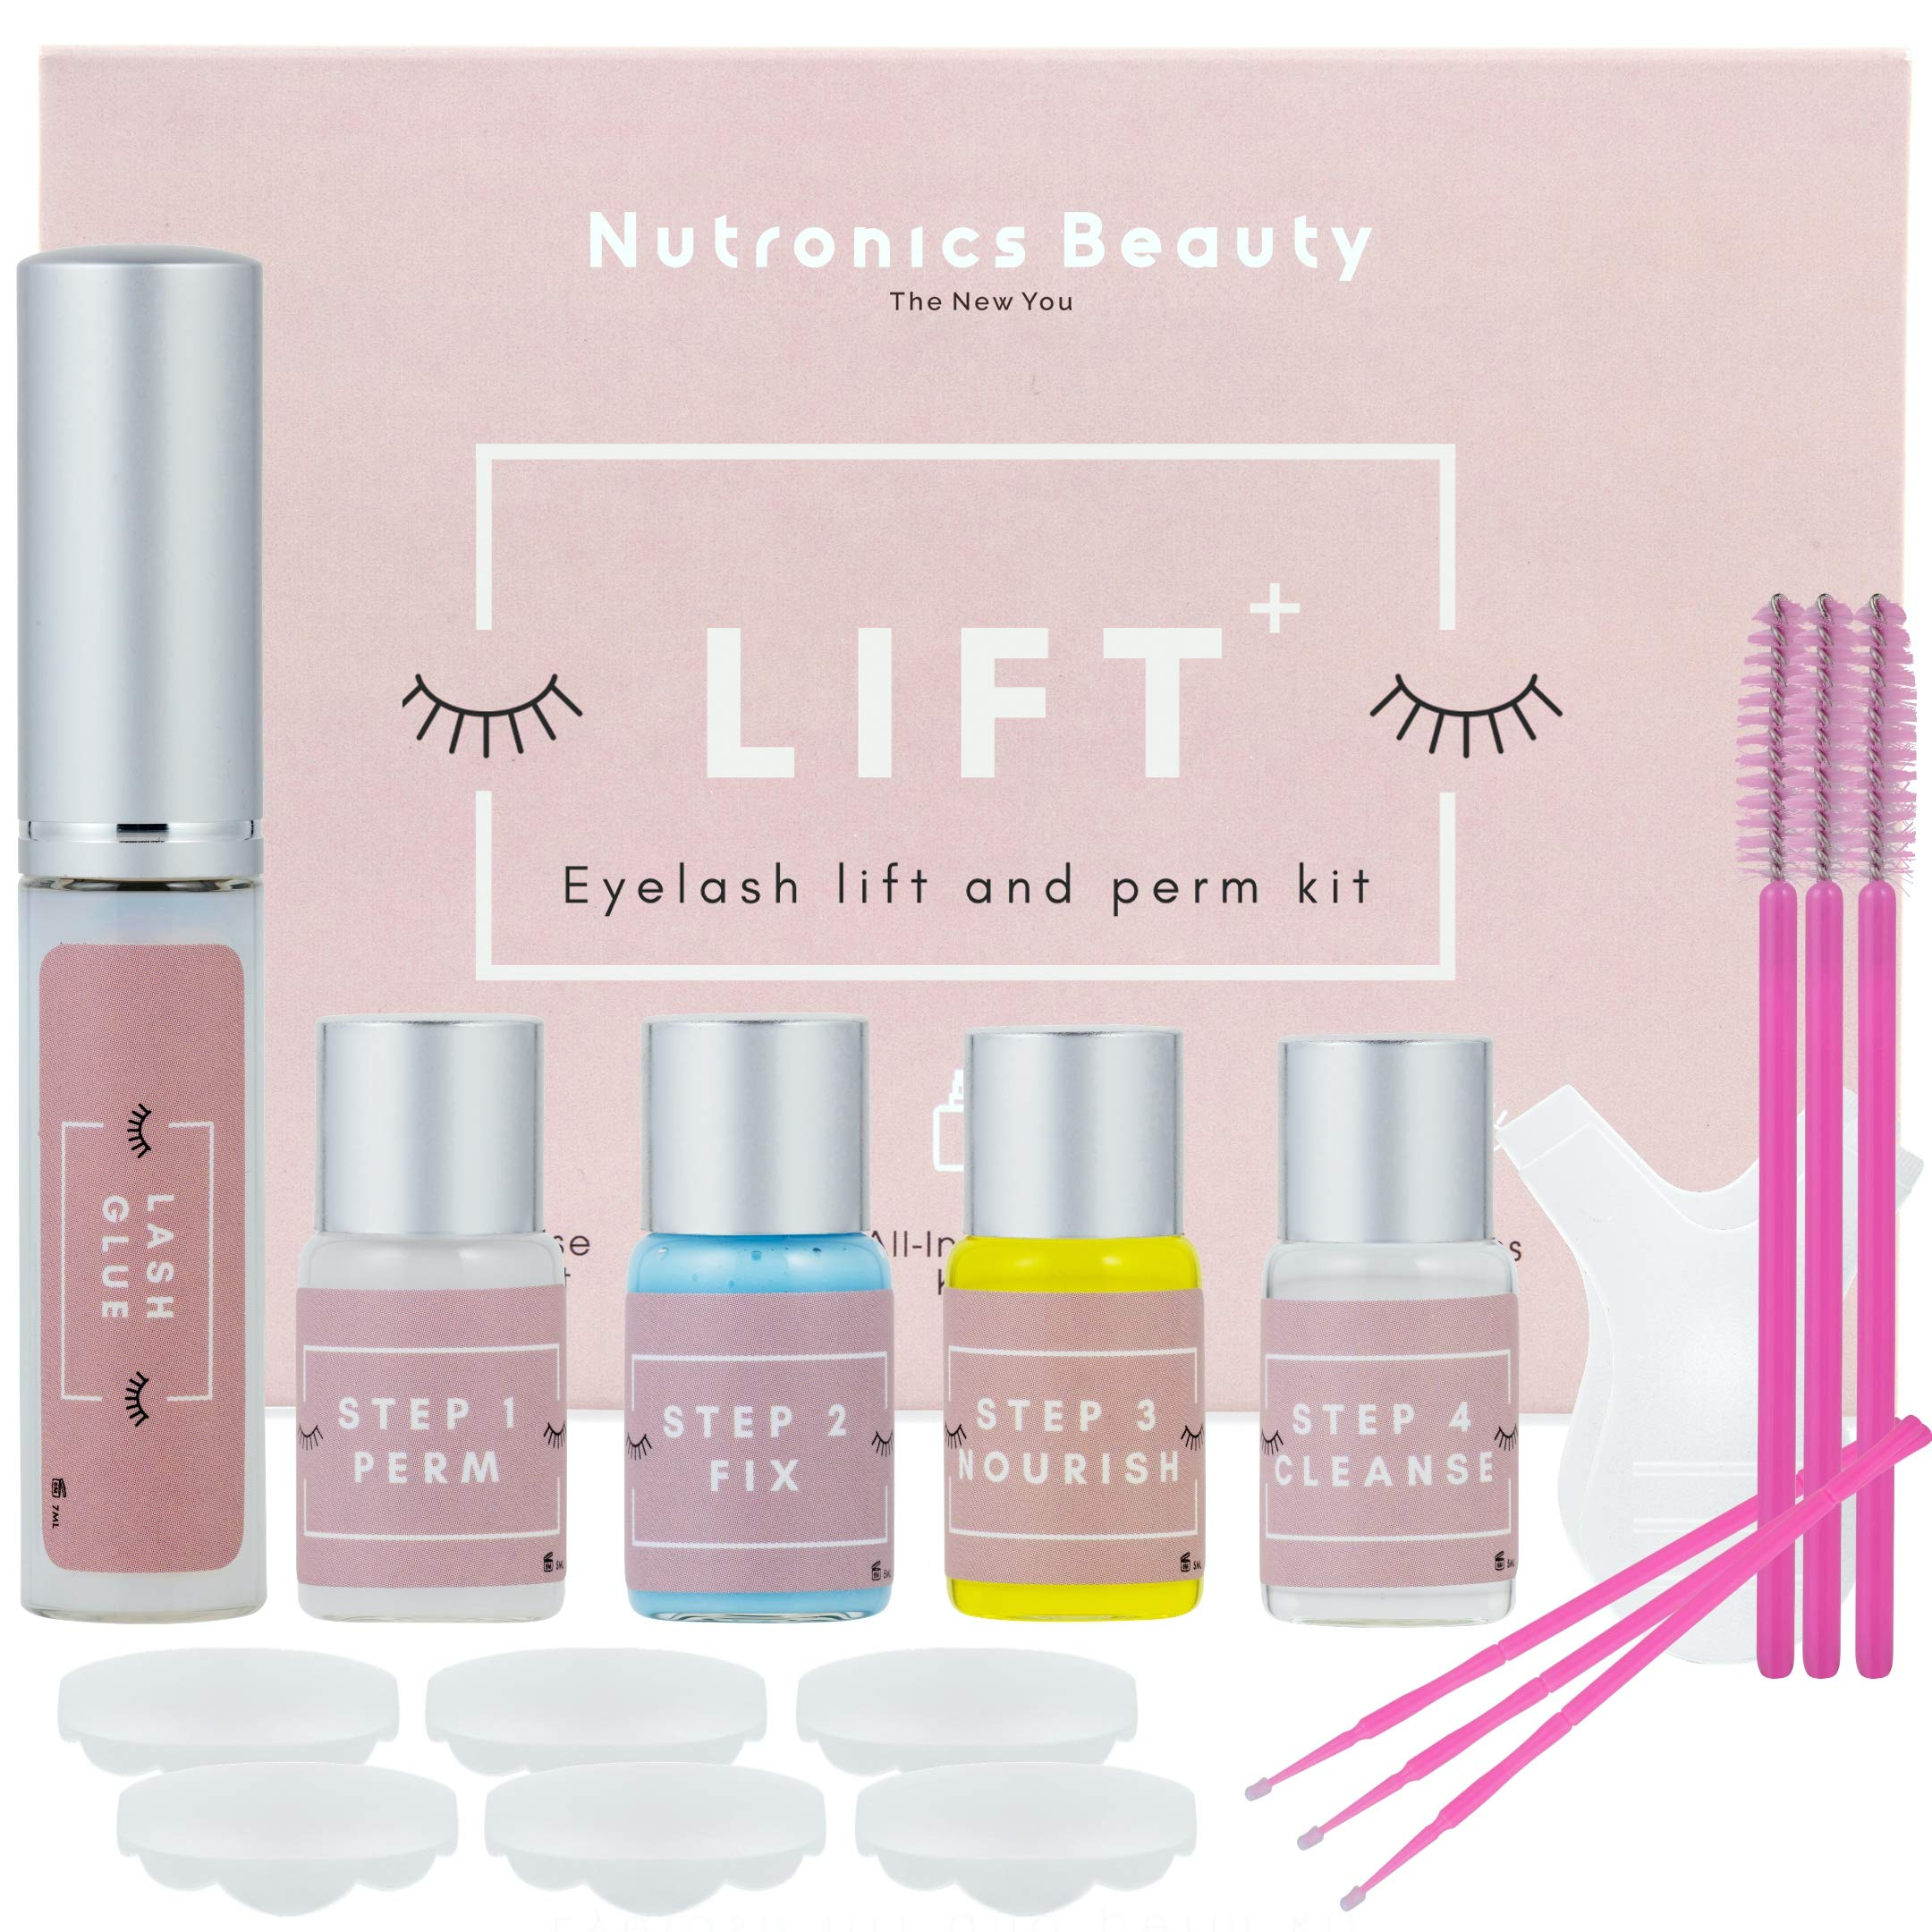 Nutronics Beauty Lash Lift Kit - Premium Home Eyelash Lift Kit, Eyelash Lifting & Perming, All In One Lash Lifting & Curling - Professional Results From Home With 6-12 Months Of Lifted Lashes Per Box